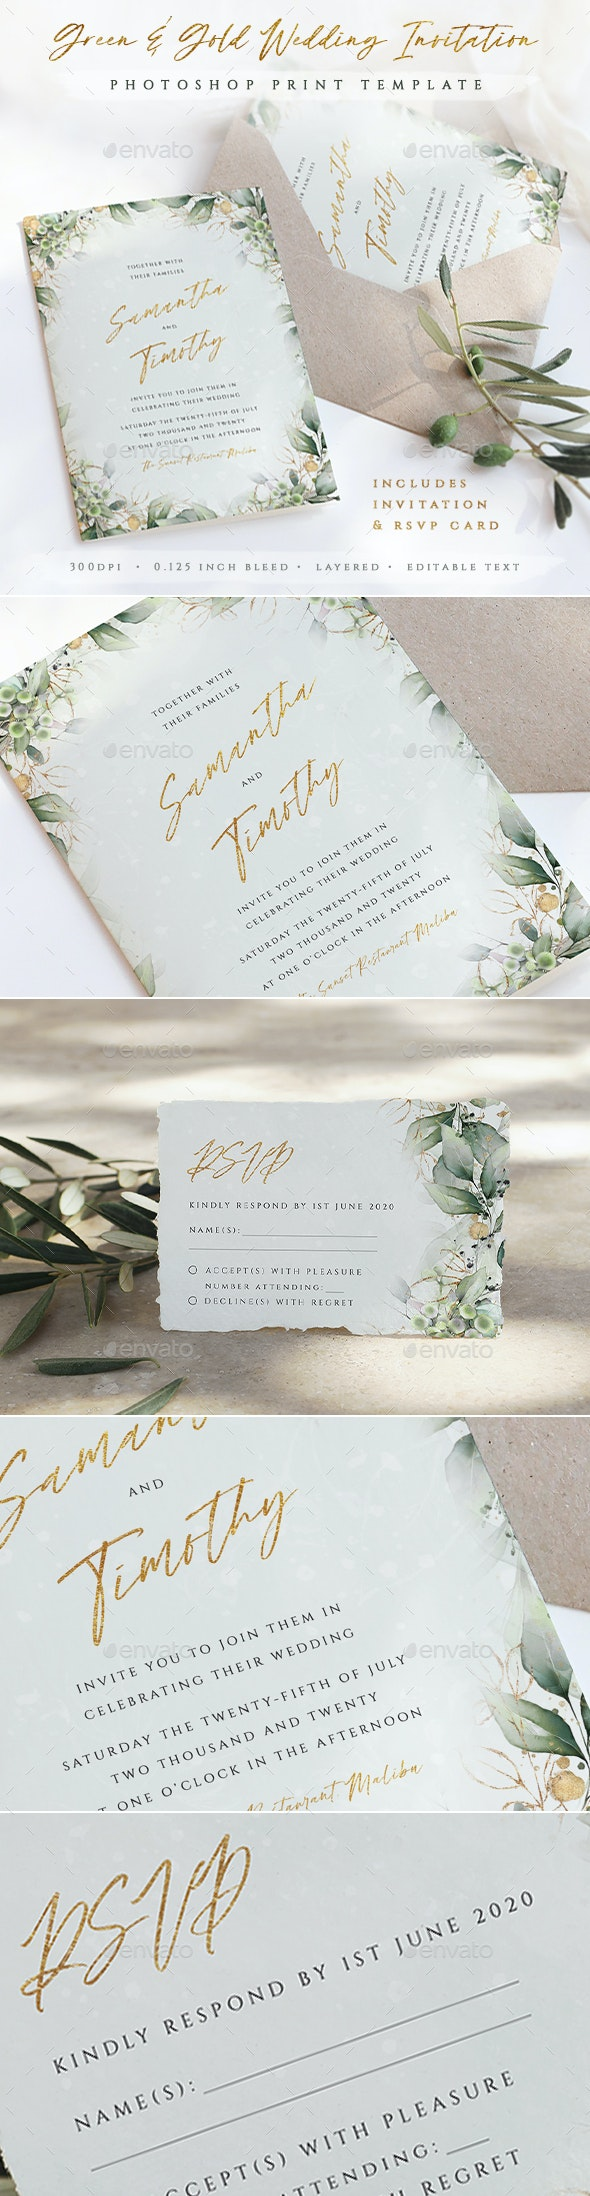 Green and Gold Wedding Invitation Template - Weddings Cards & Invites